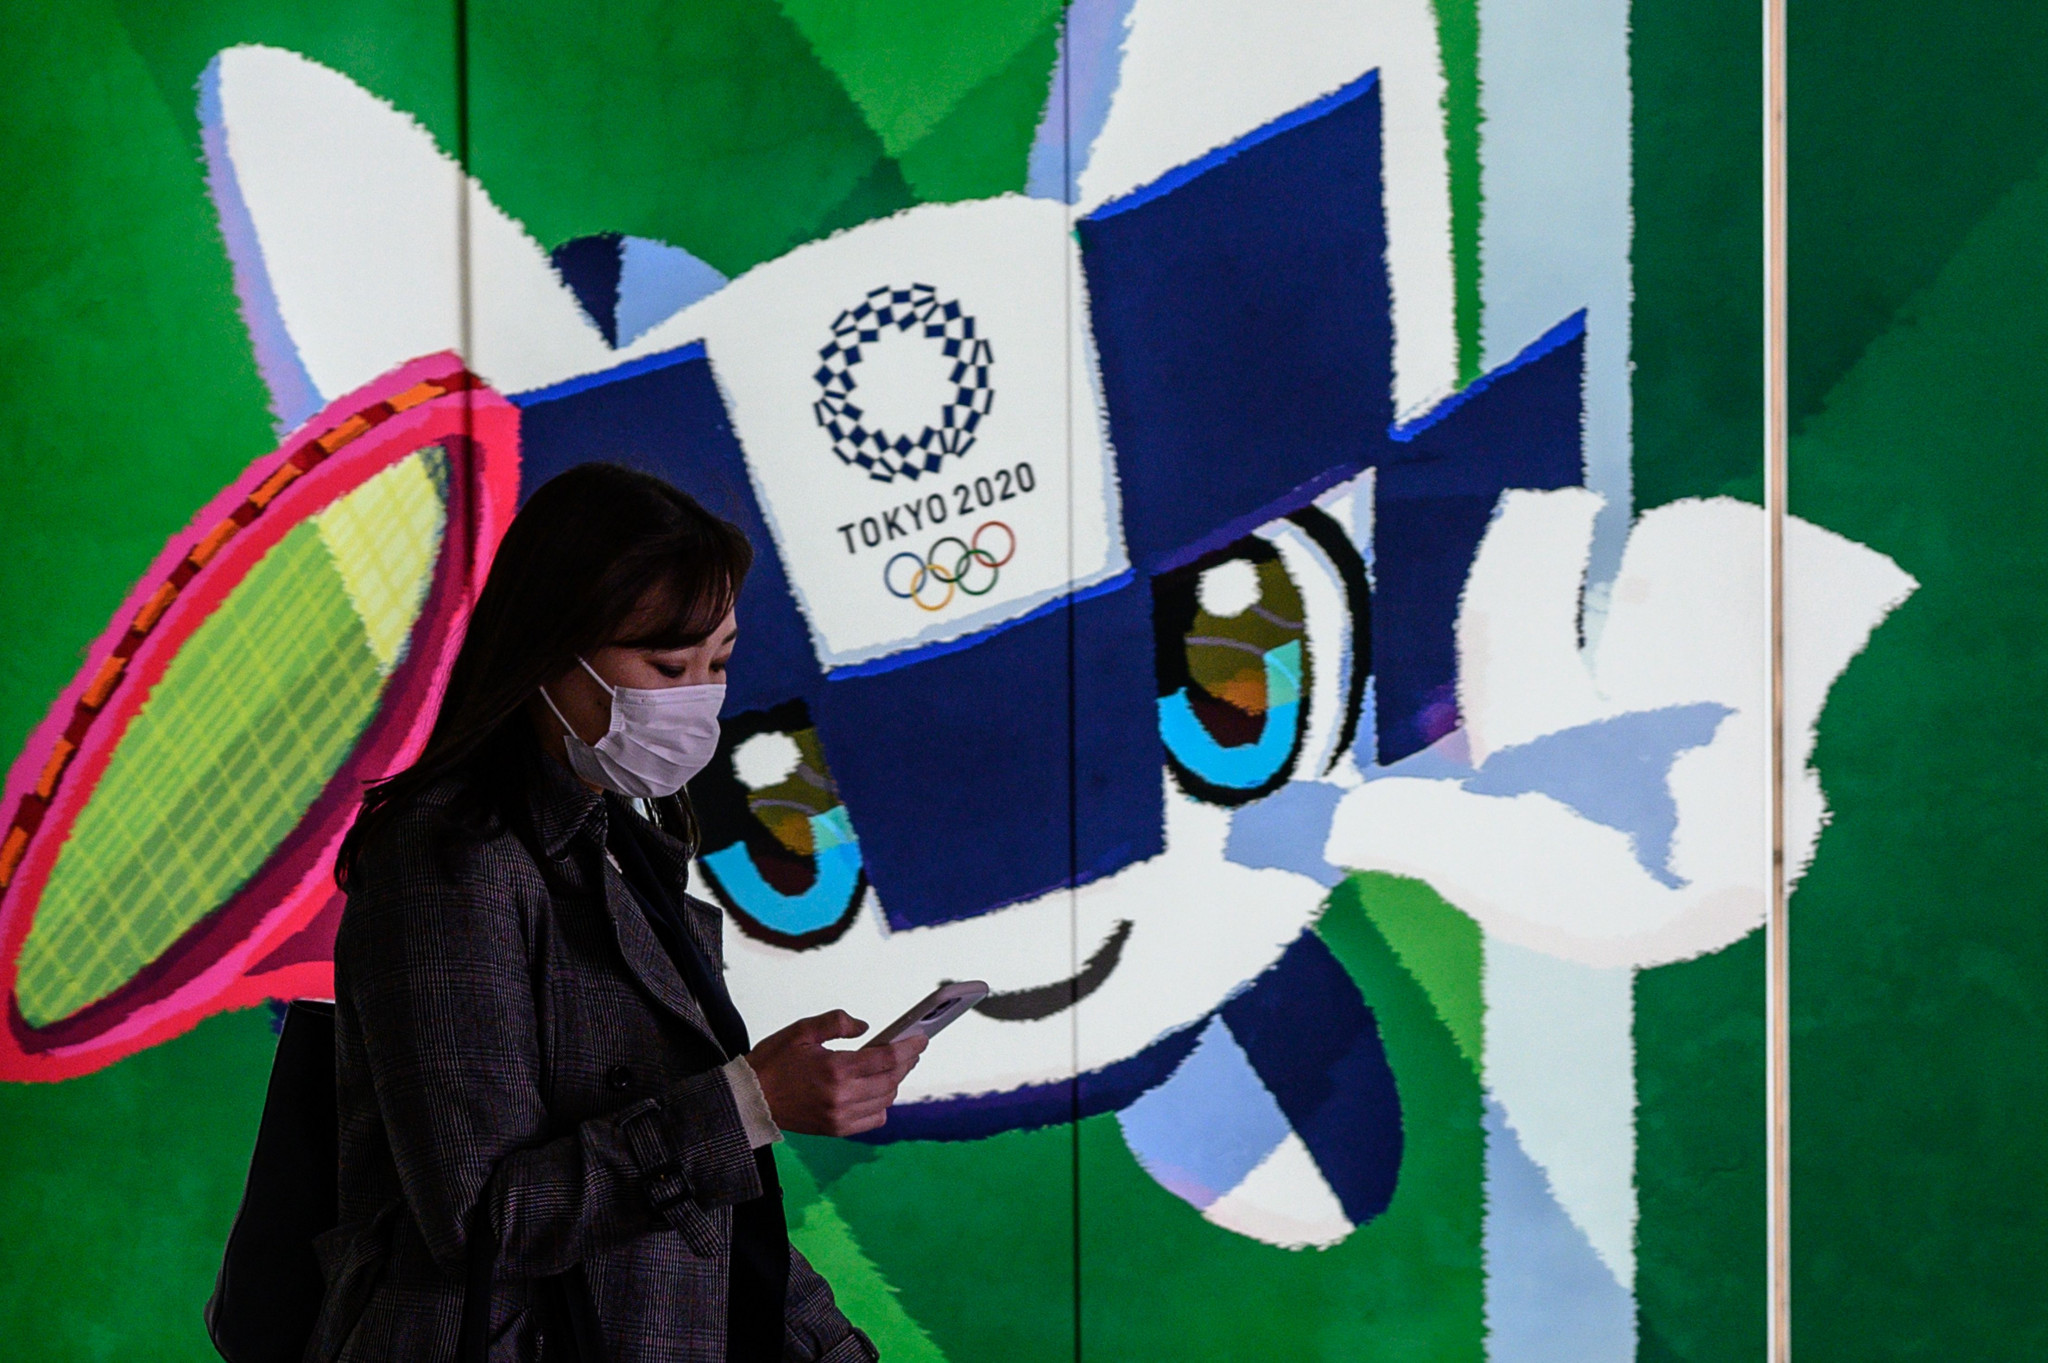 Tokyo 2020 has reported a fourth case of coronavirus among staff ©Getty Images